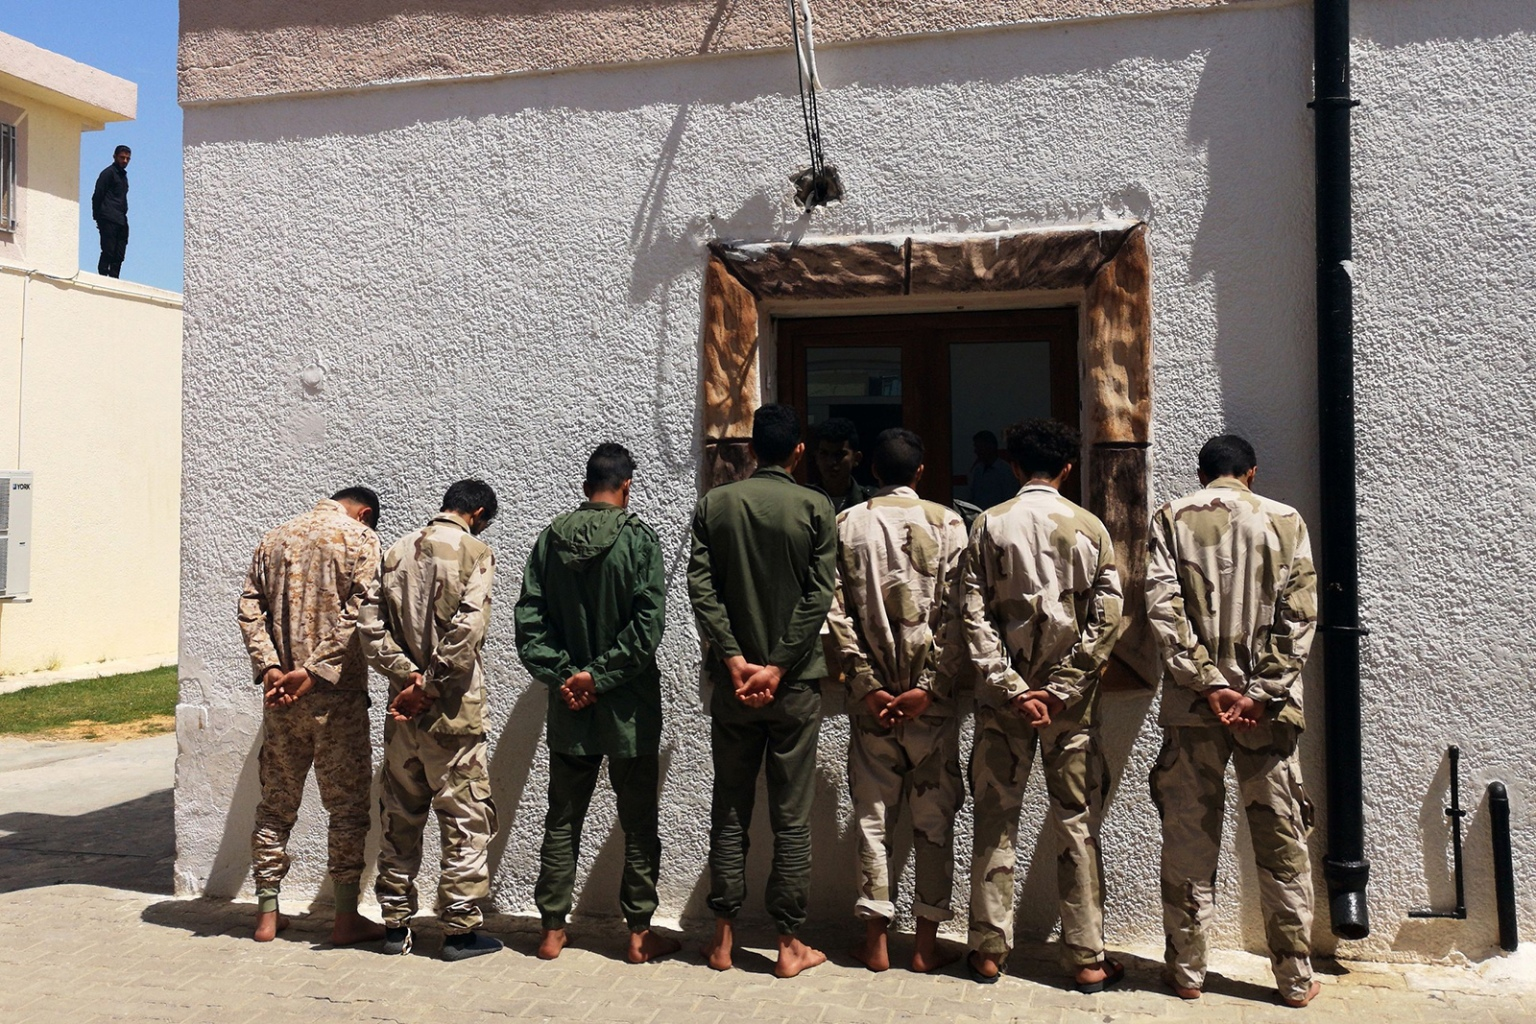 Fighters loyal to military commander Khalifa Haftar, reportedly minors, are imprisoned by forces from the U.N.-backed Government of National Accord in Tripoli's suburb of Ain Zara on April 11. The area faced heavy clashes as Haftar's forces pressed an assault aimed at taking Libya's capital from the GNA. IMED LAMLOUM/AFP/Getty Images